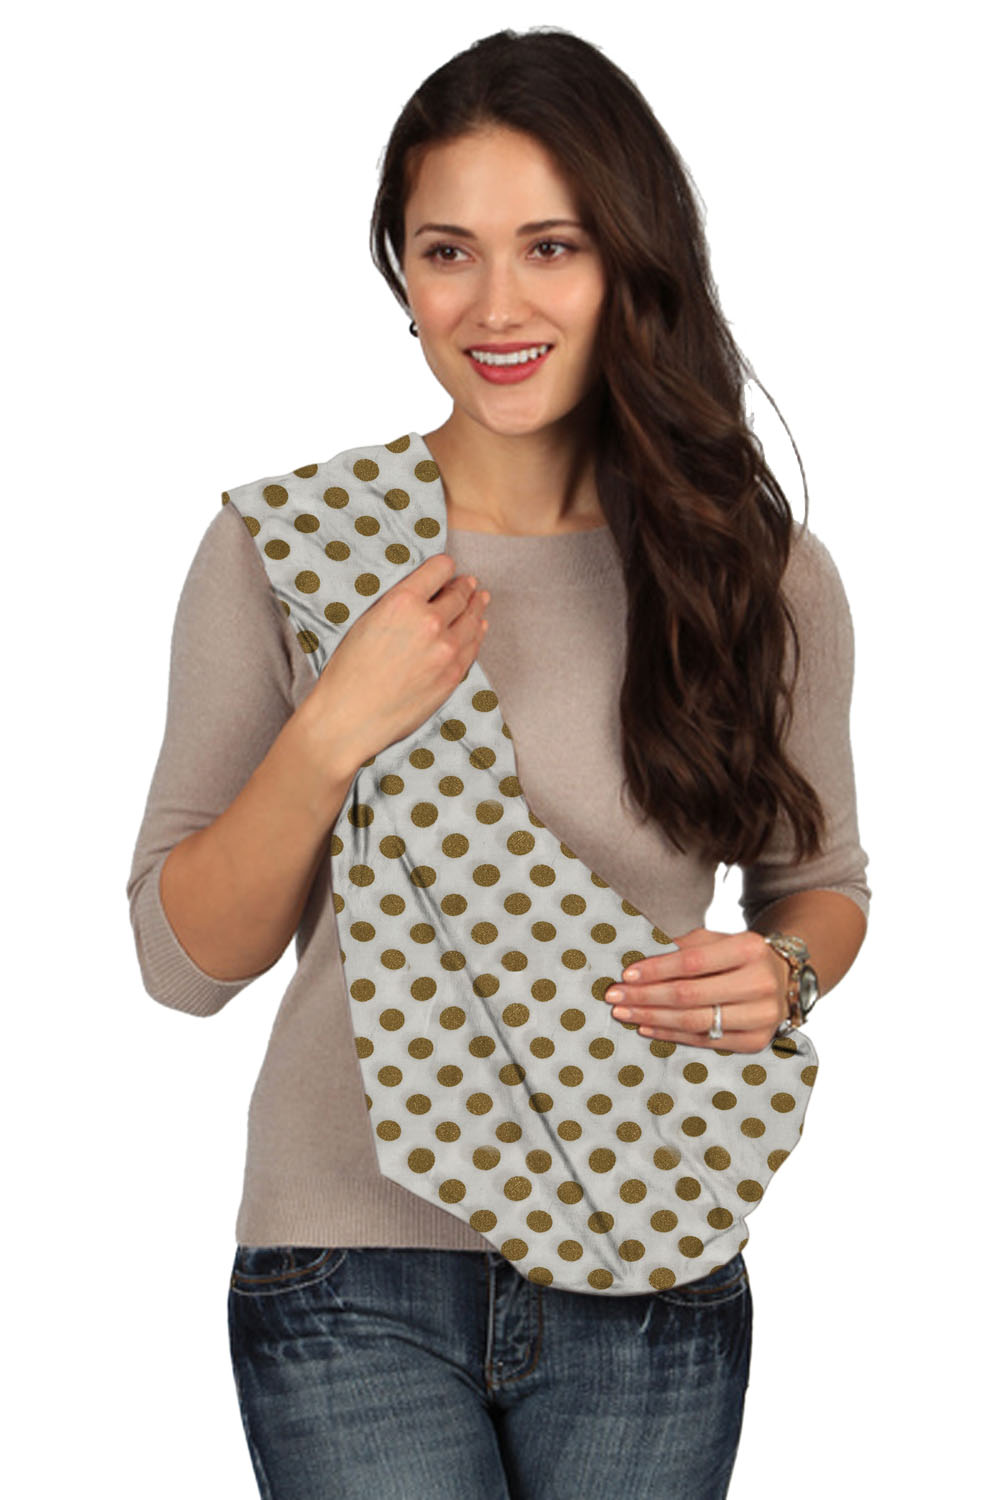 Karma Baby White with Golden Dot Baby Sling - Small